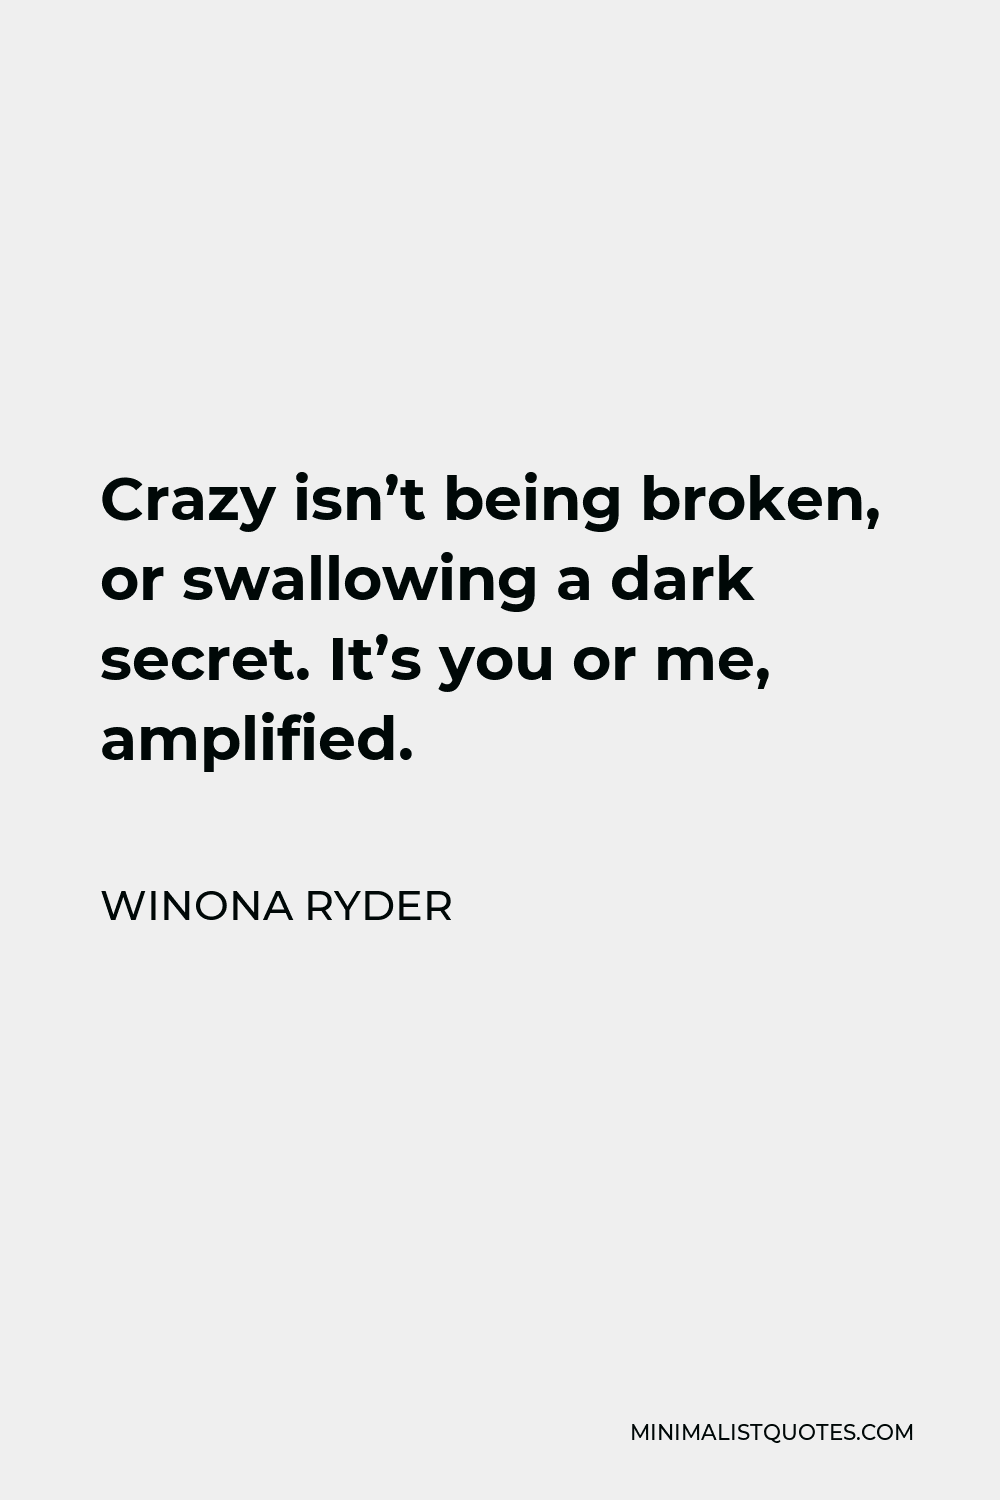 Winona Ryder Quote - Crazy isn't being broken, or swallowing a dark secret. It's you or me, amplified.